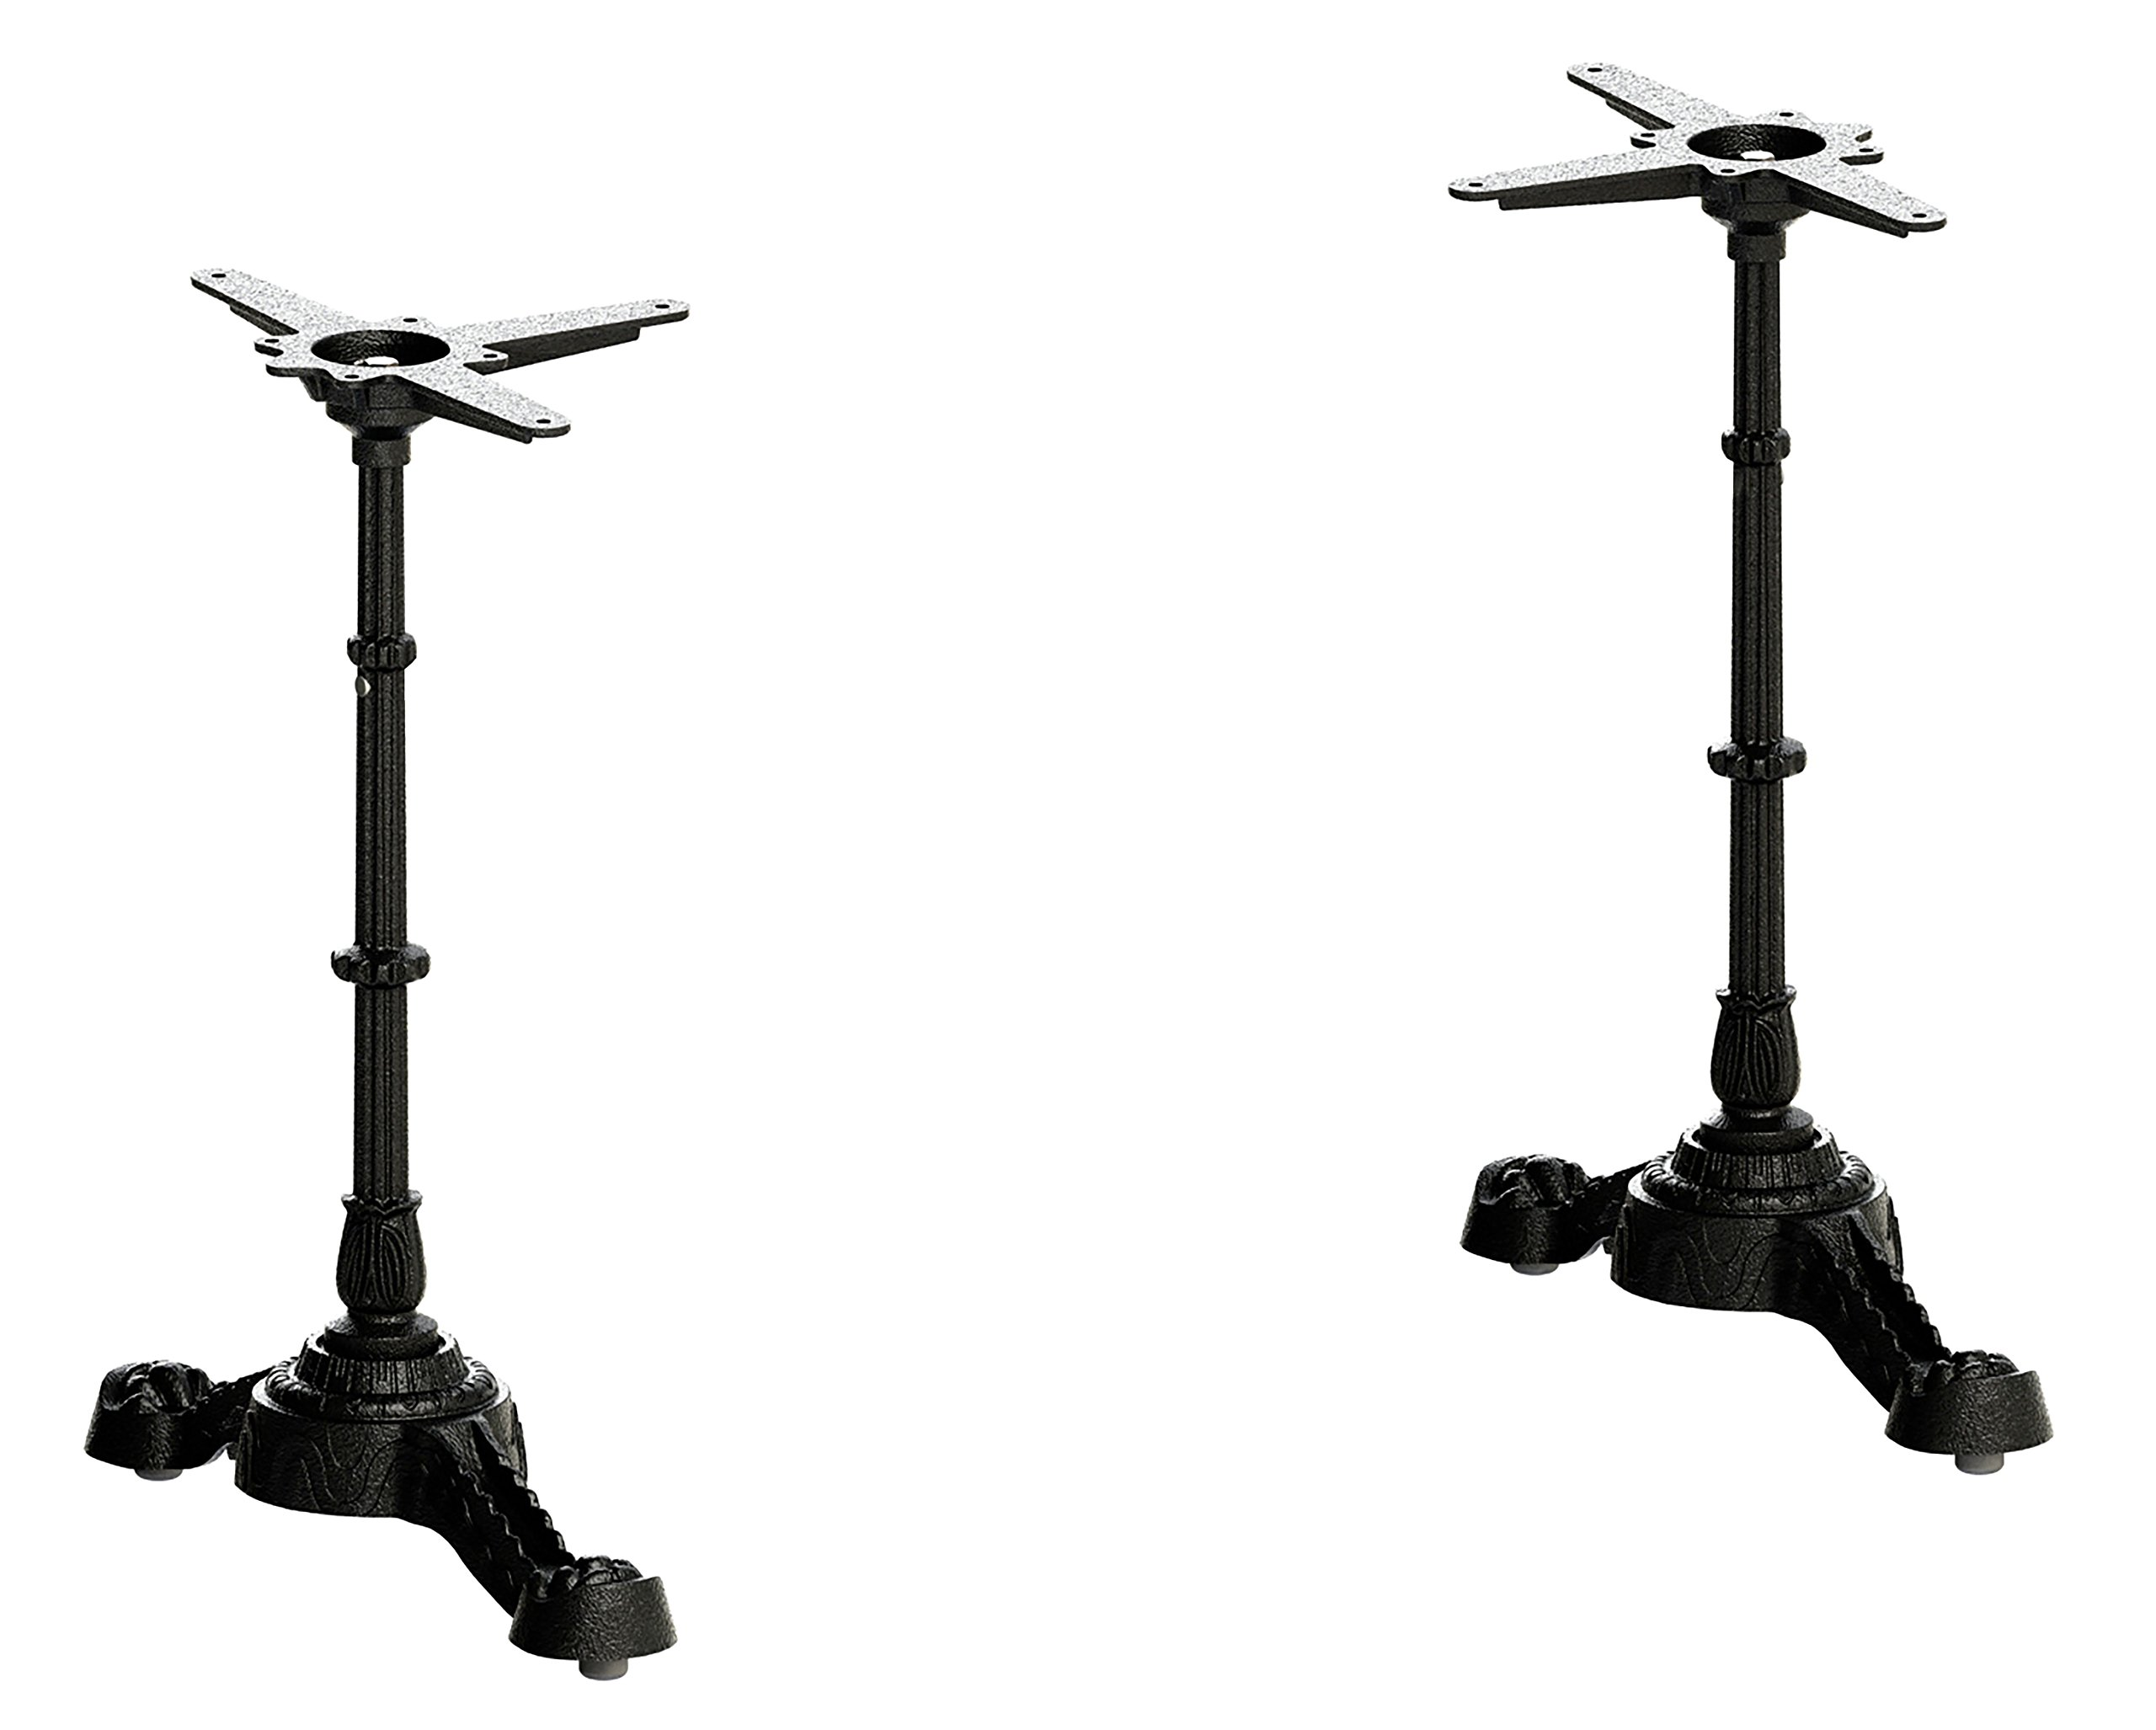 FLAT self-stabilizing PT23 (23'') - cast iron, antique-style, dining height end-base set